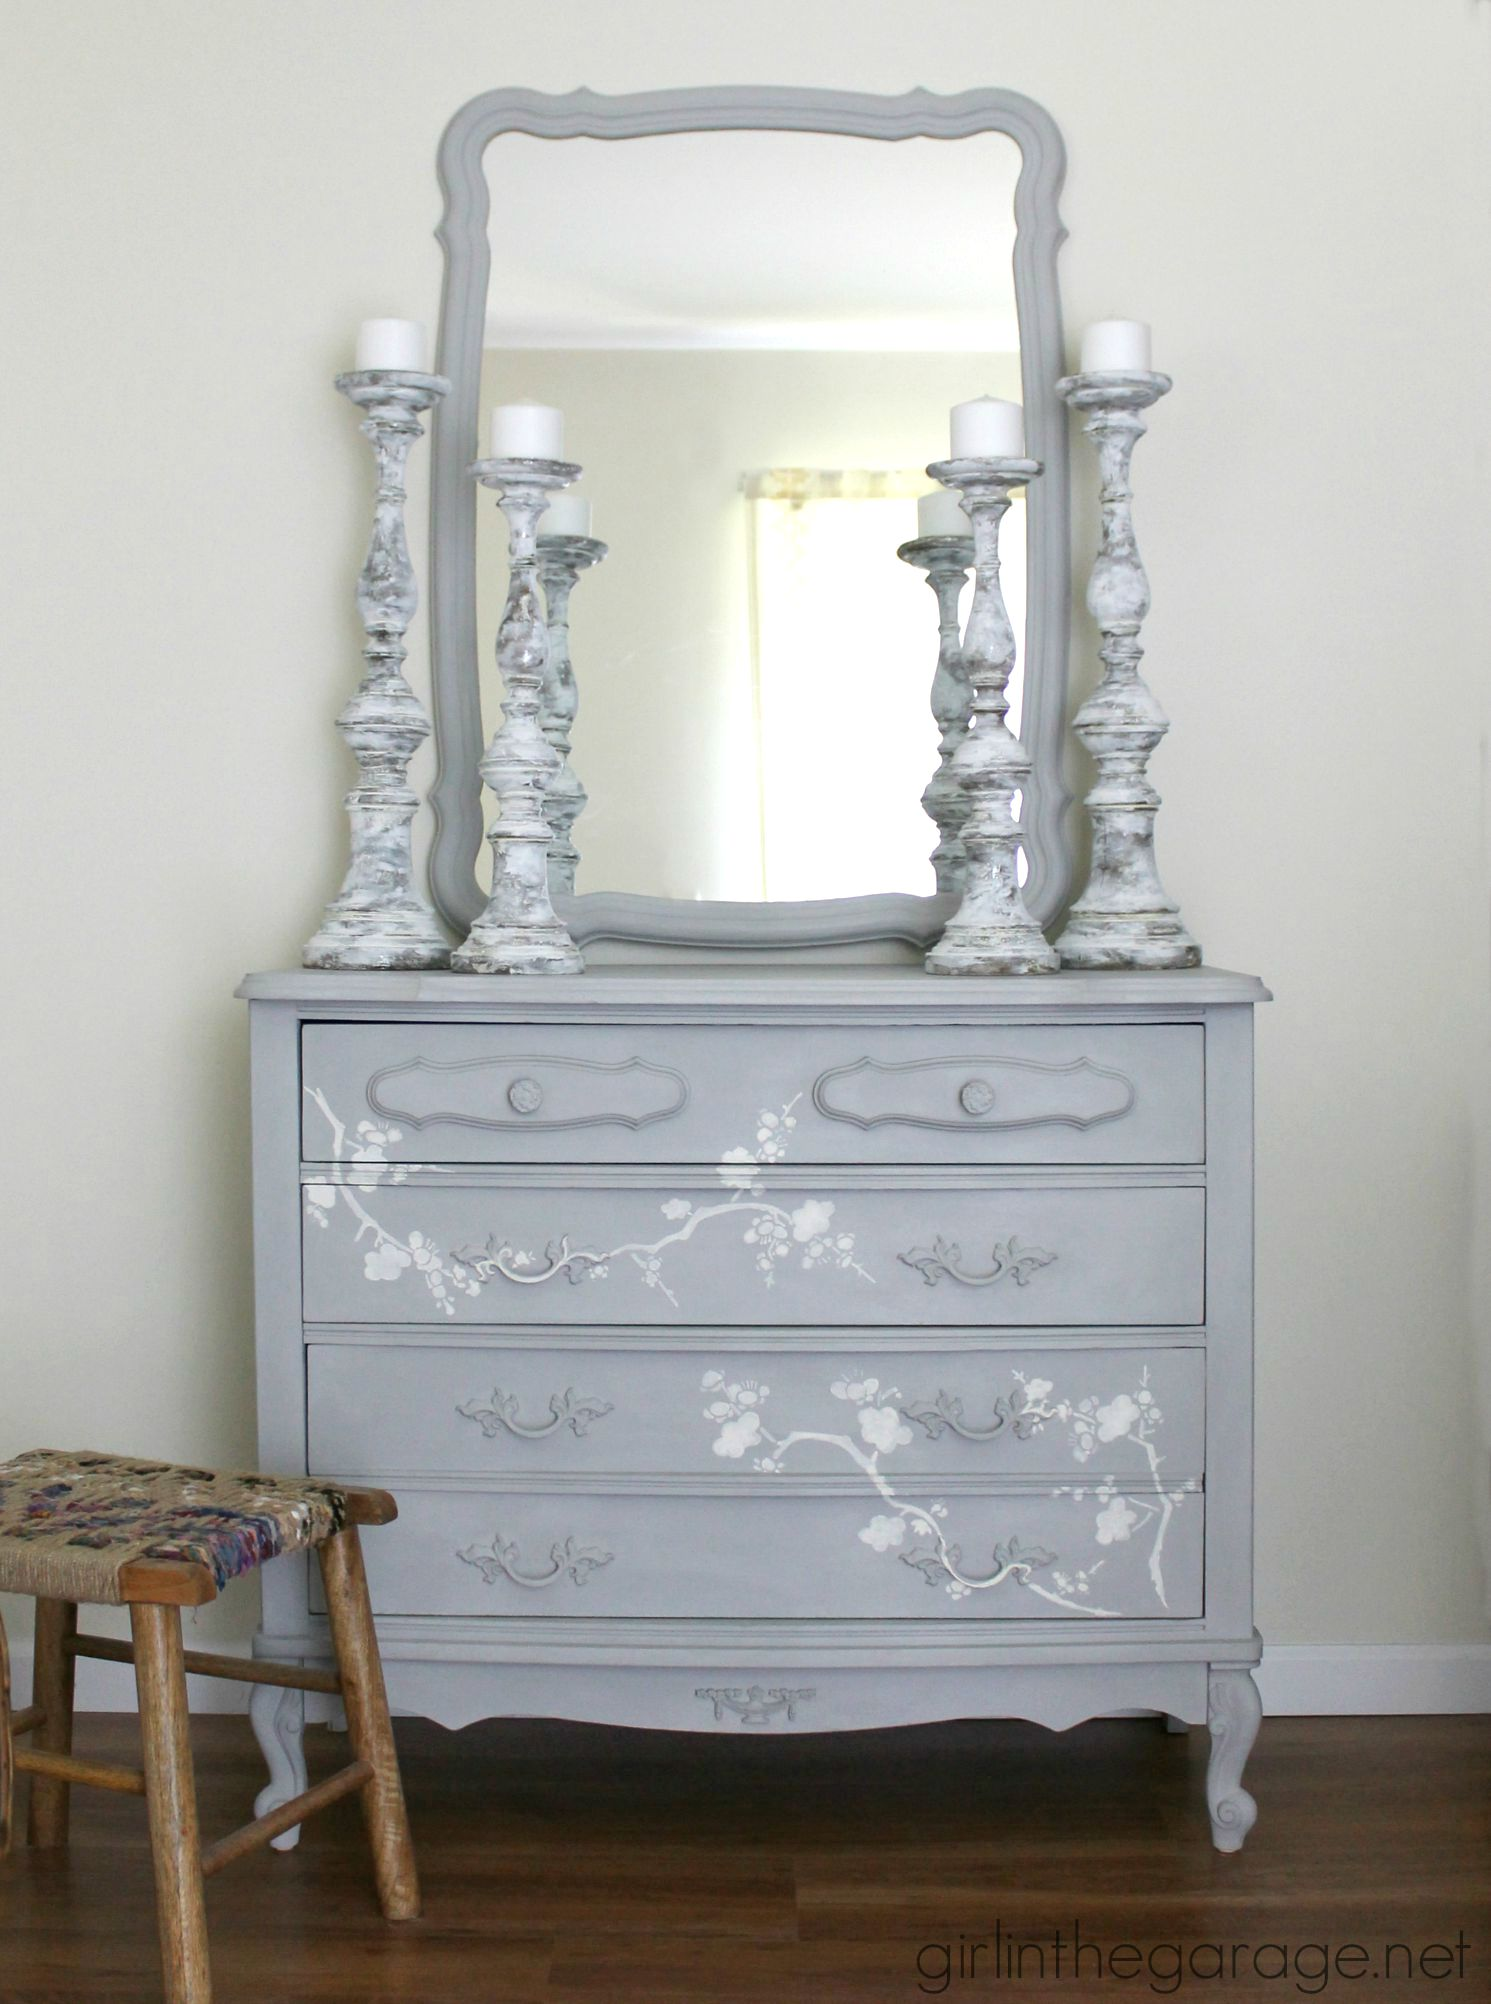 Chalk Paint and Cherry Blossoms  A Dresser Makeover  Girl in the Garage